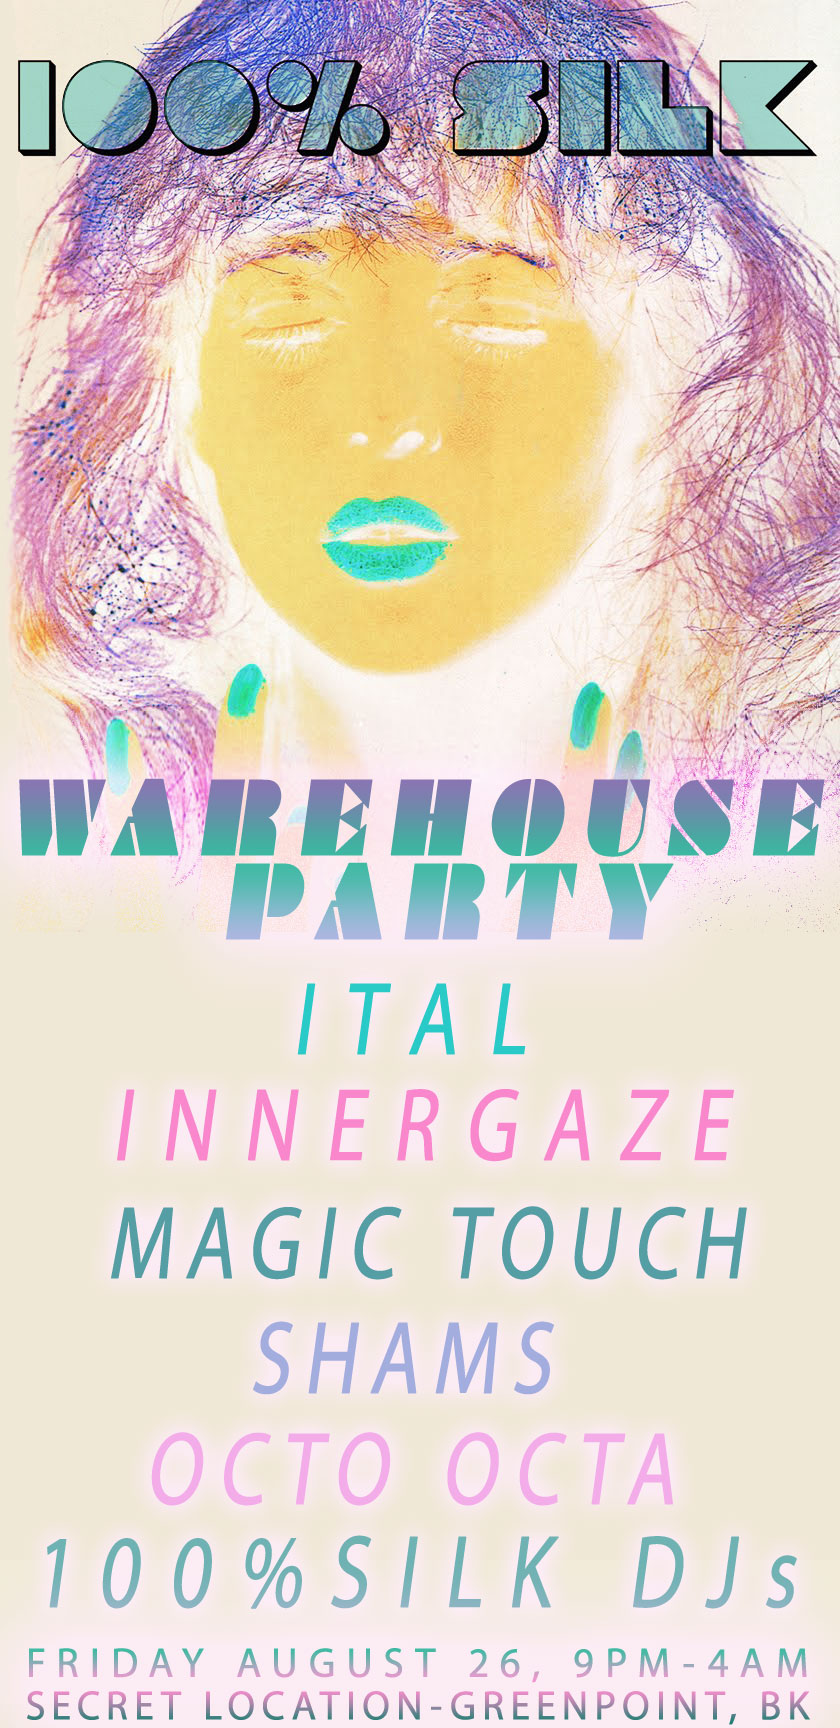 100% Silk Warehouse Party: Ital, Innergaze, Magic Touch, Shams, Octo Octa  August 2011